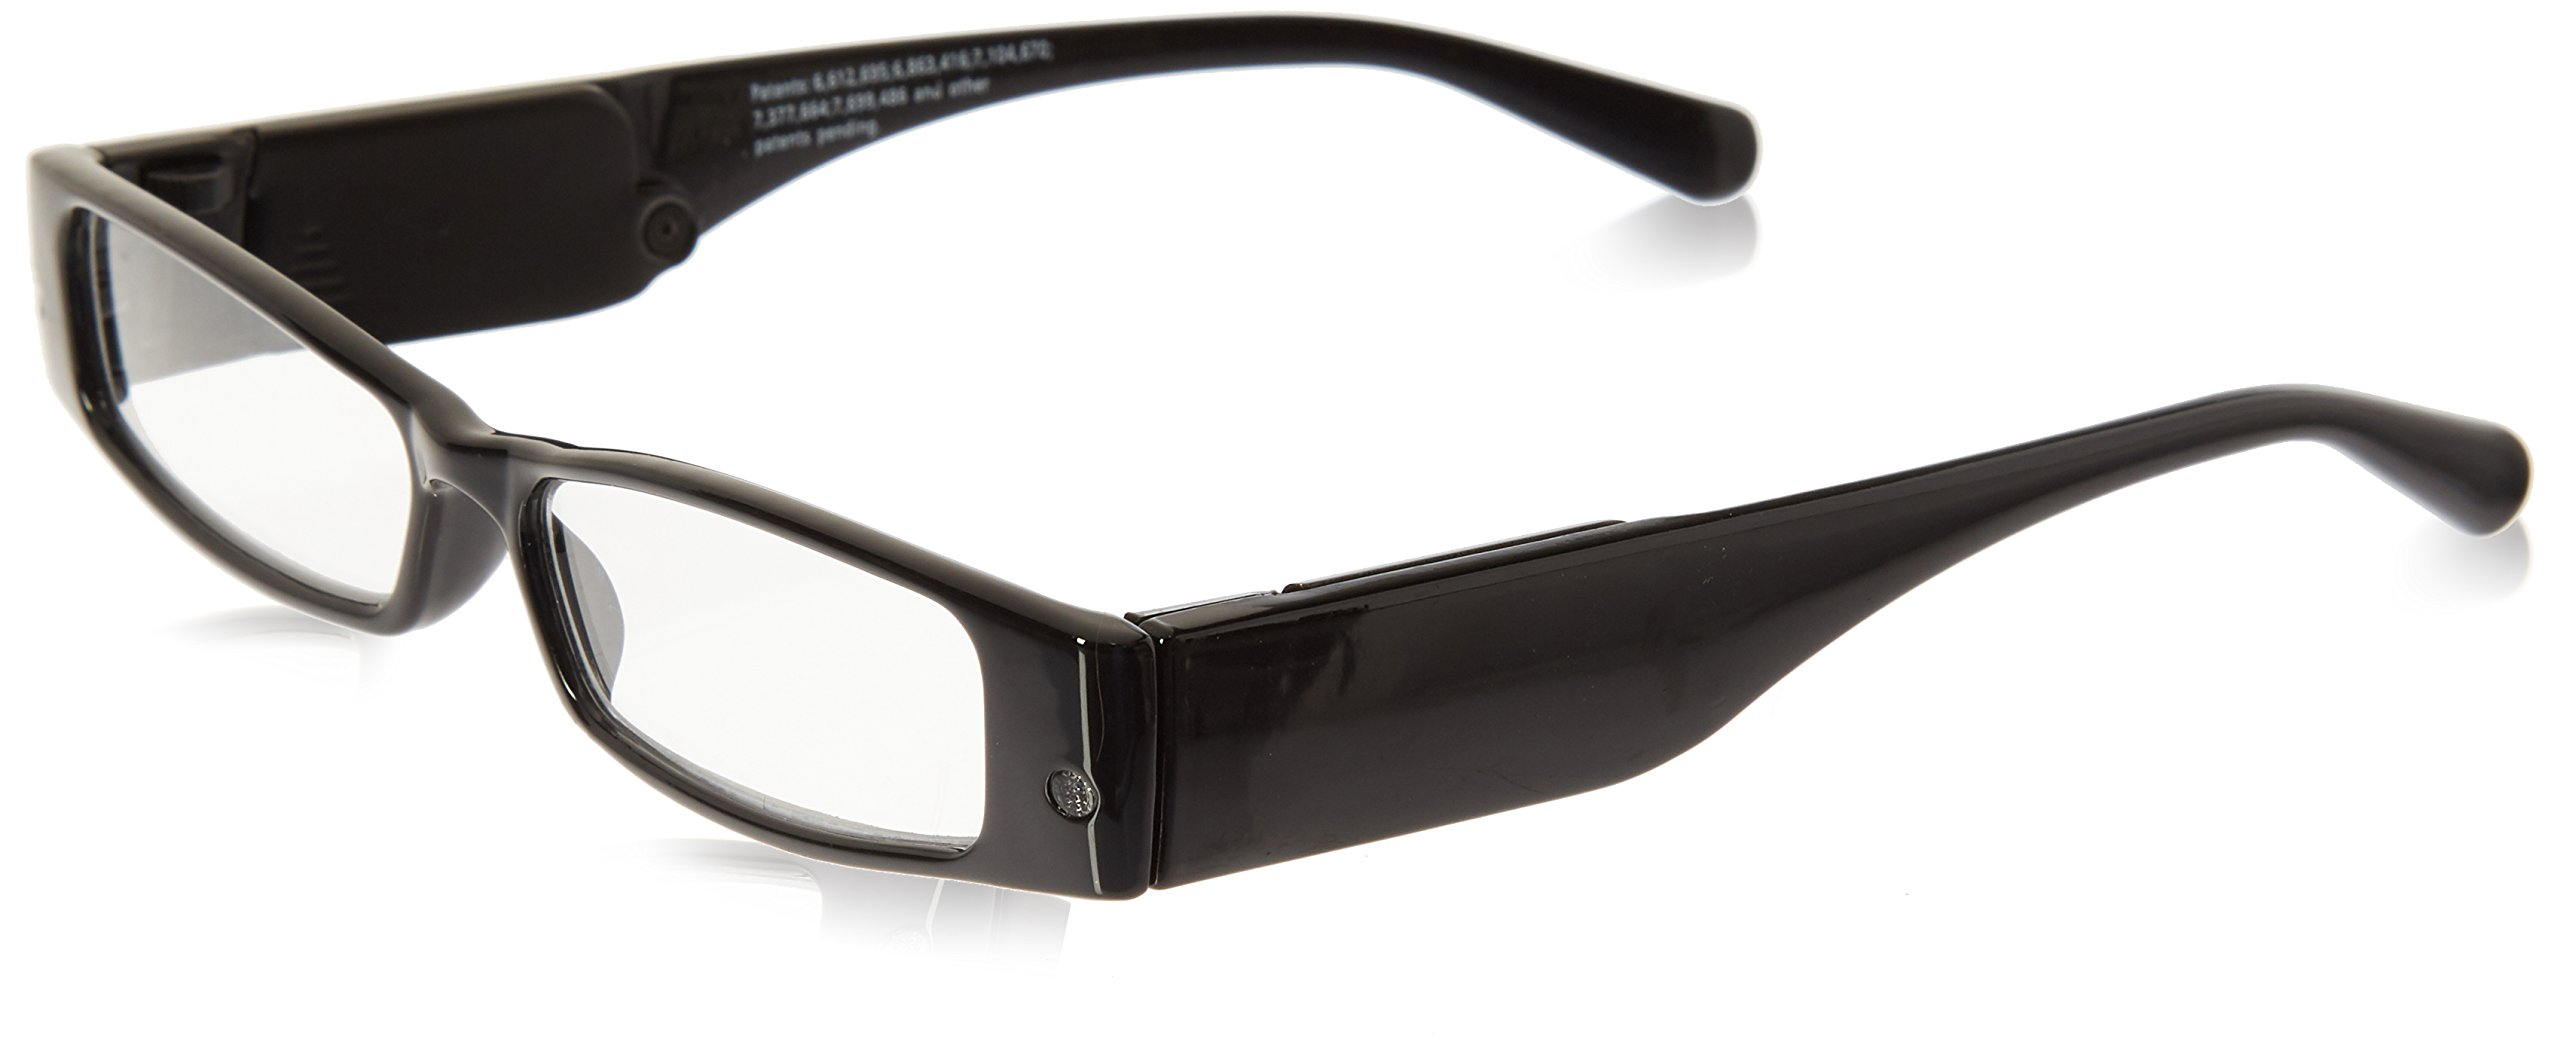 LIGHTSPECS LP Ultra Bright LED Lighted Lightweight Rectangular Reading Glasses by Panther Vision